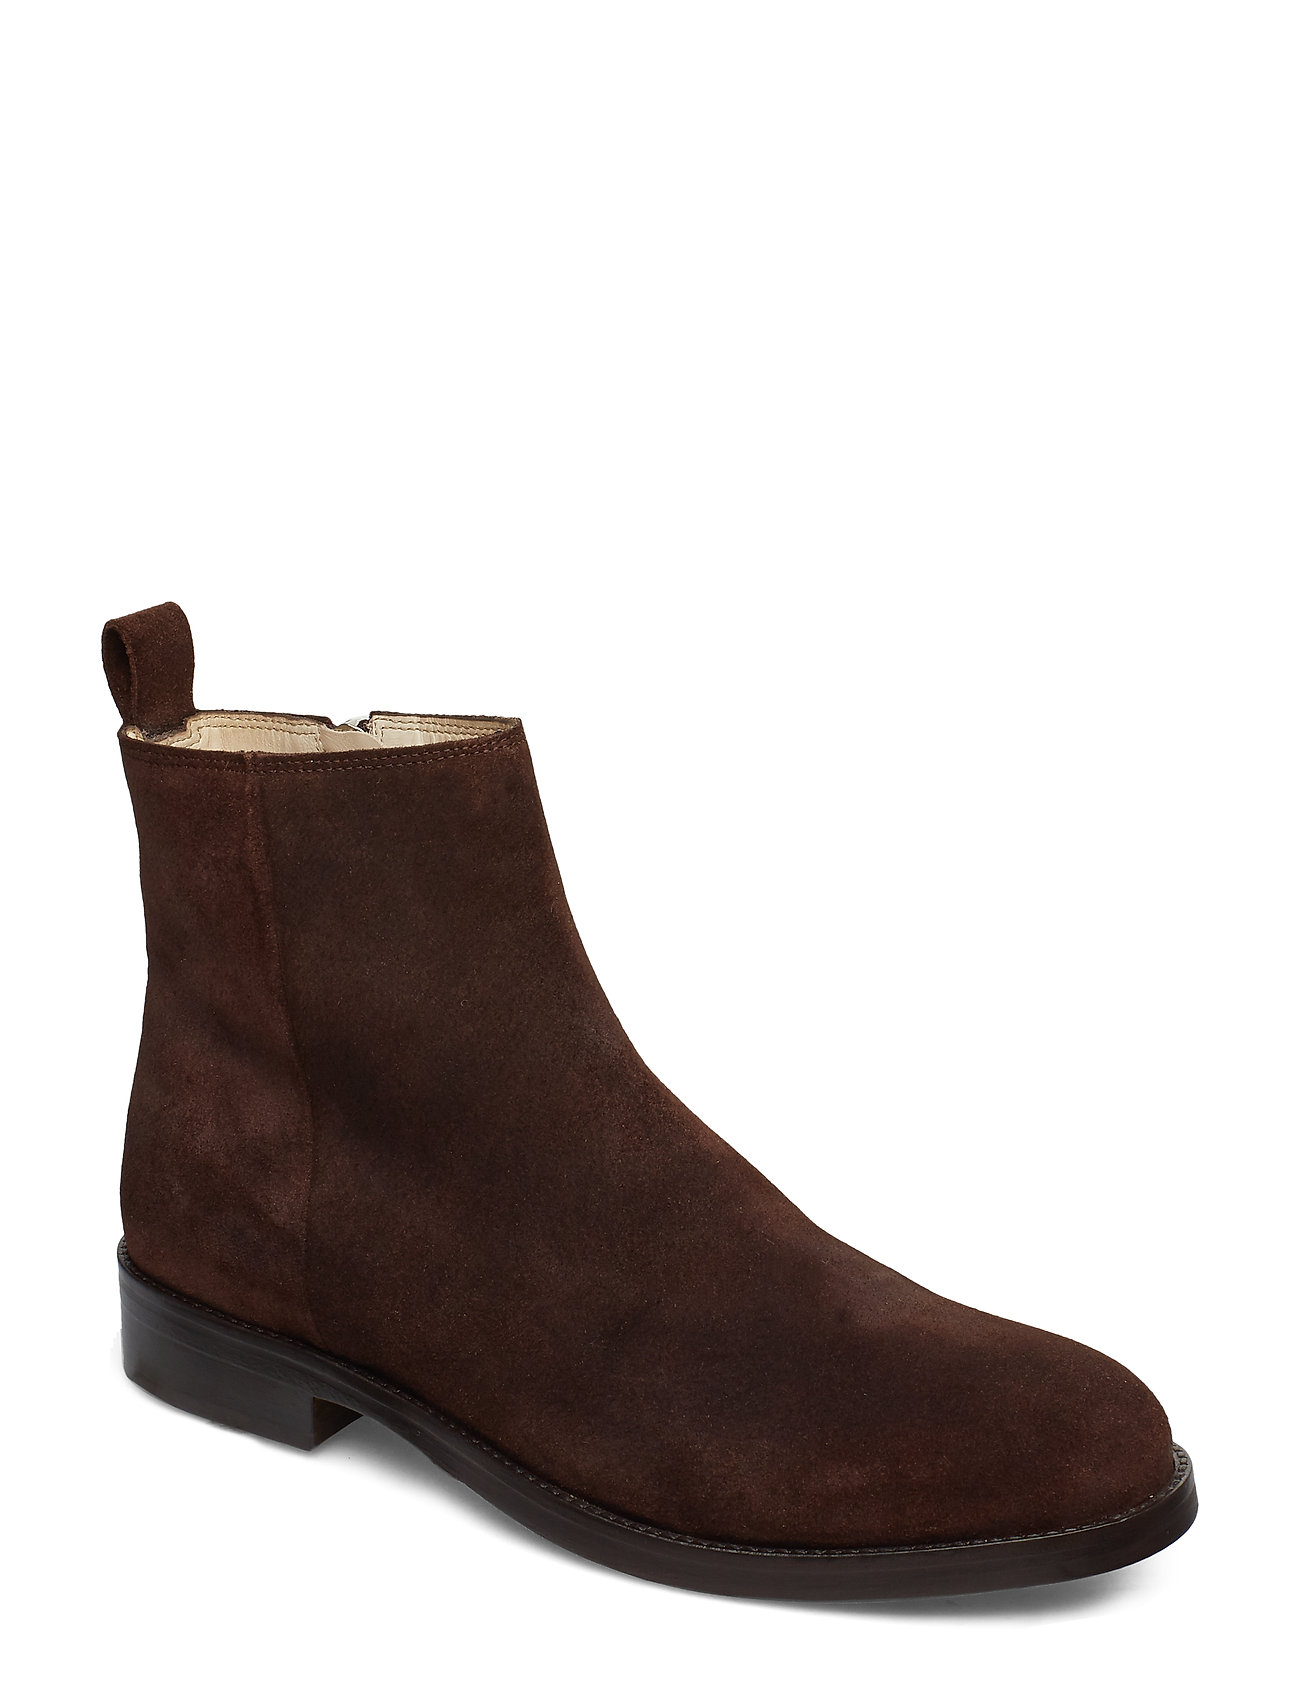 Image of Bond Ankle Boot Suede Støvlet Chelsea Boot Brun Royal RepubliQ (3210235041)